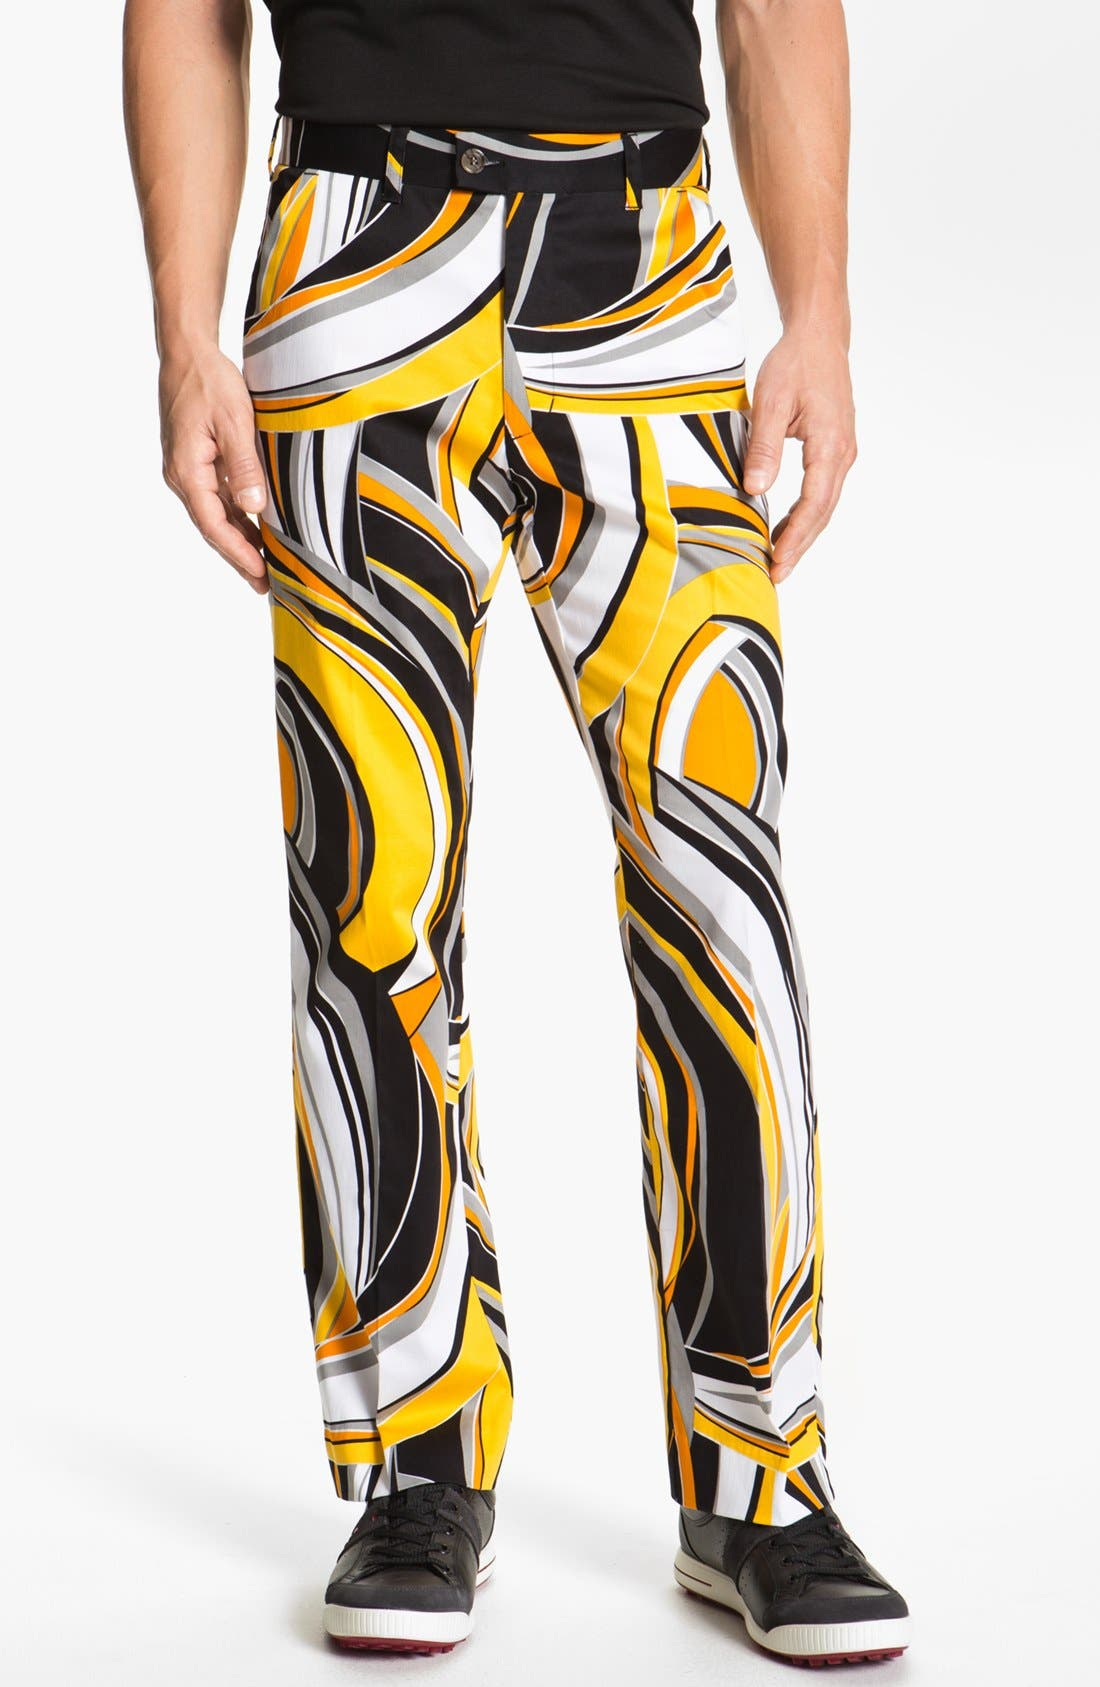 LOUD MOUTH GOLF,                             Loudmouth Golf 'Swirls Gone Wild' Golf Pants,                             Main thumbnail 1, color,                             700